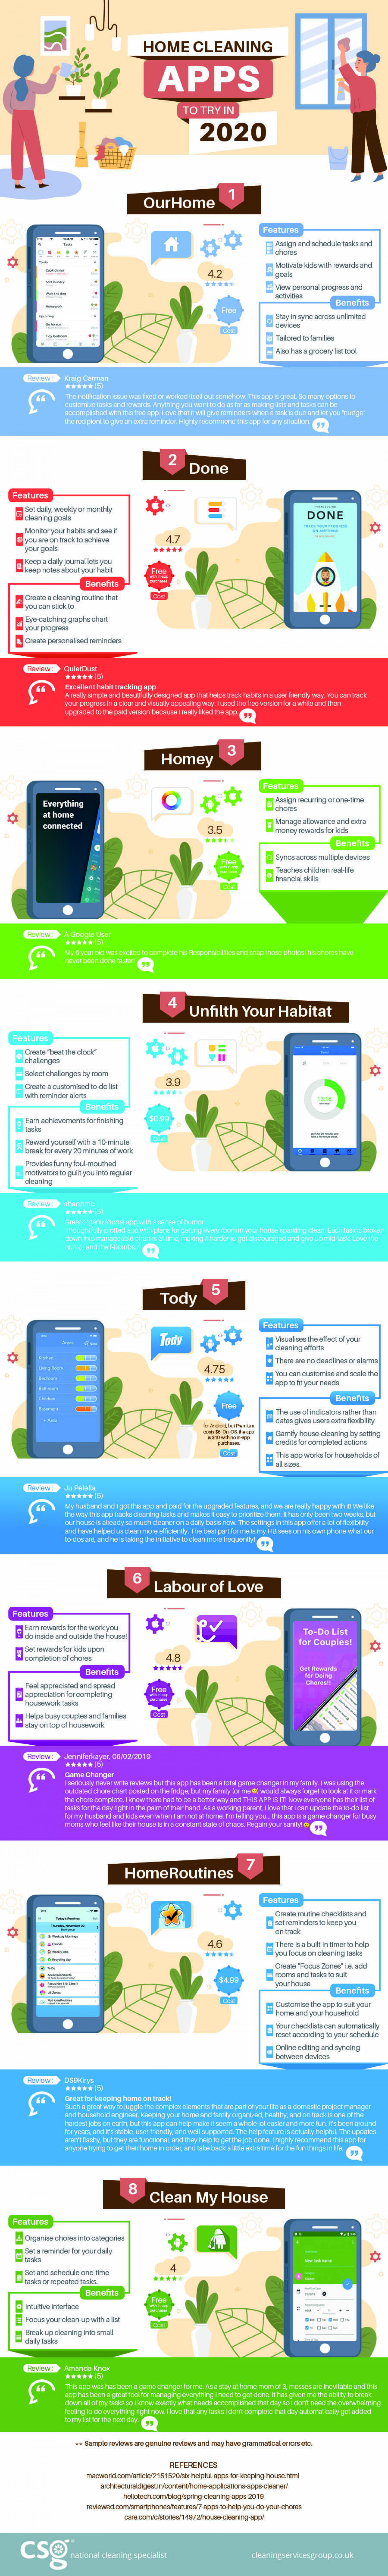 Home Cleaning Apps to Try in 2020 (Infographic)